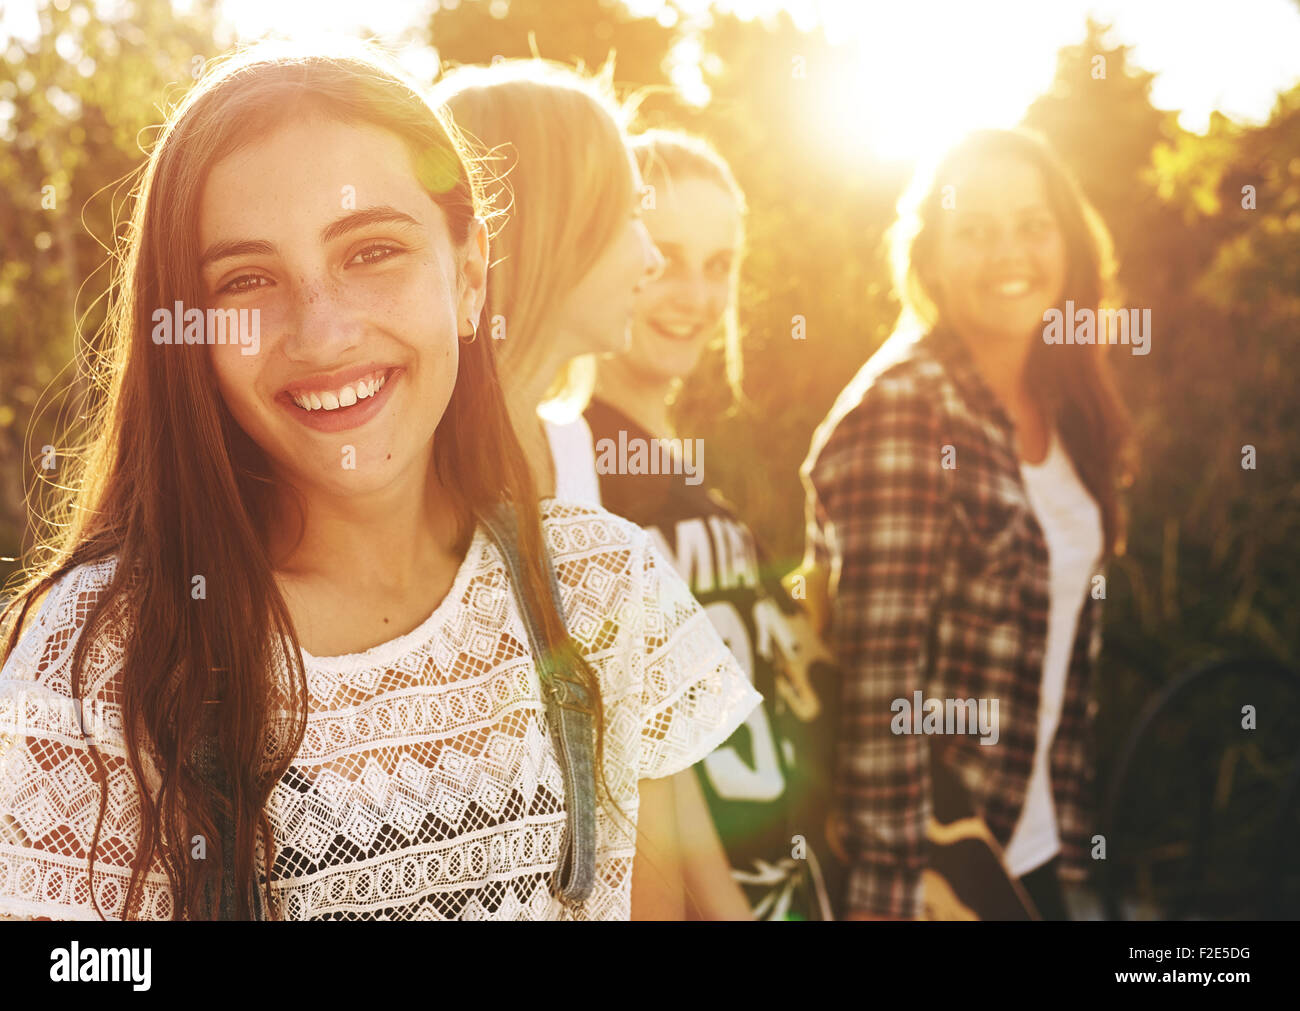 Portrait of group of friends, one smiling at camera - Stock Image